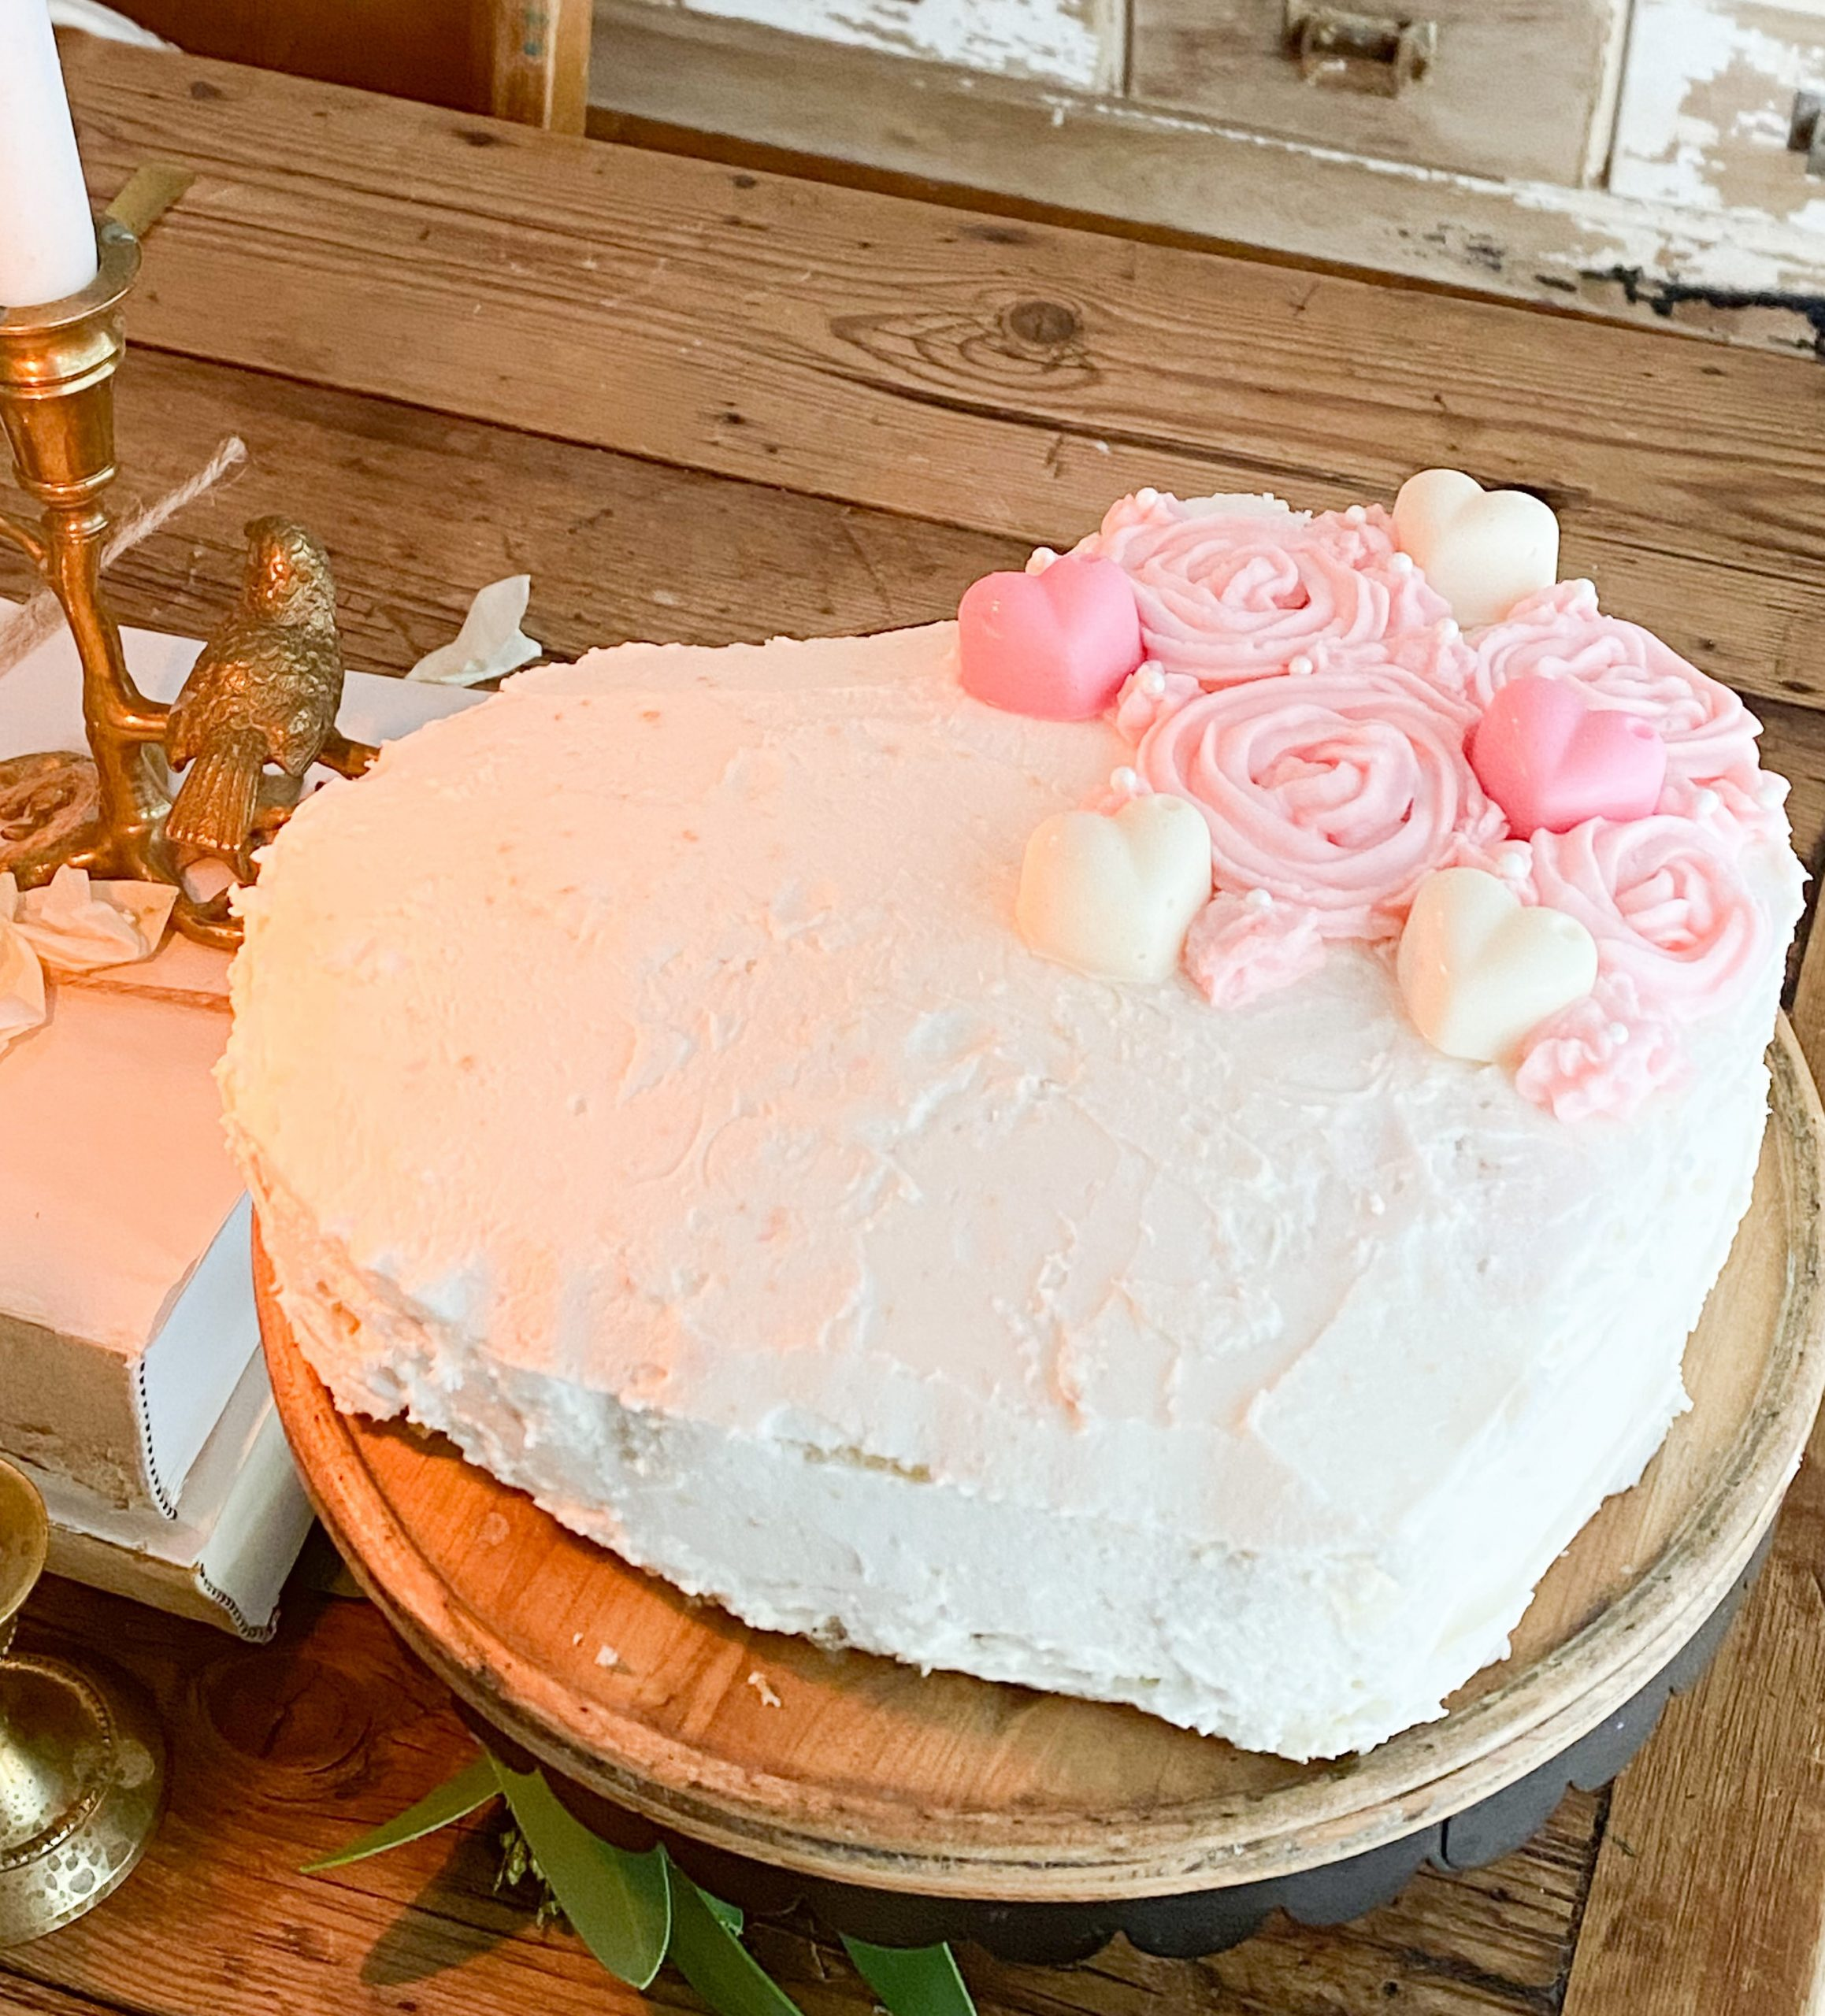 A Valentine's Day Cake for Mom